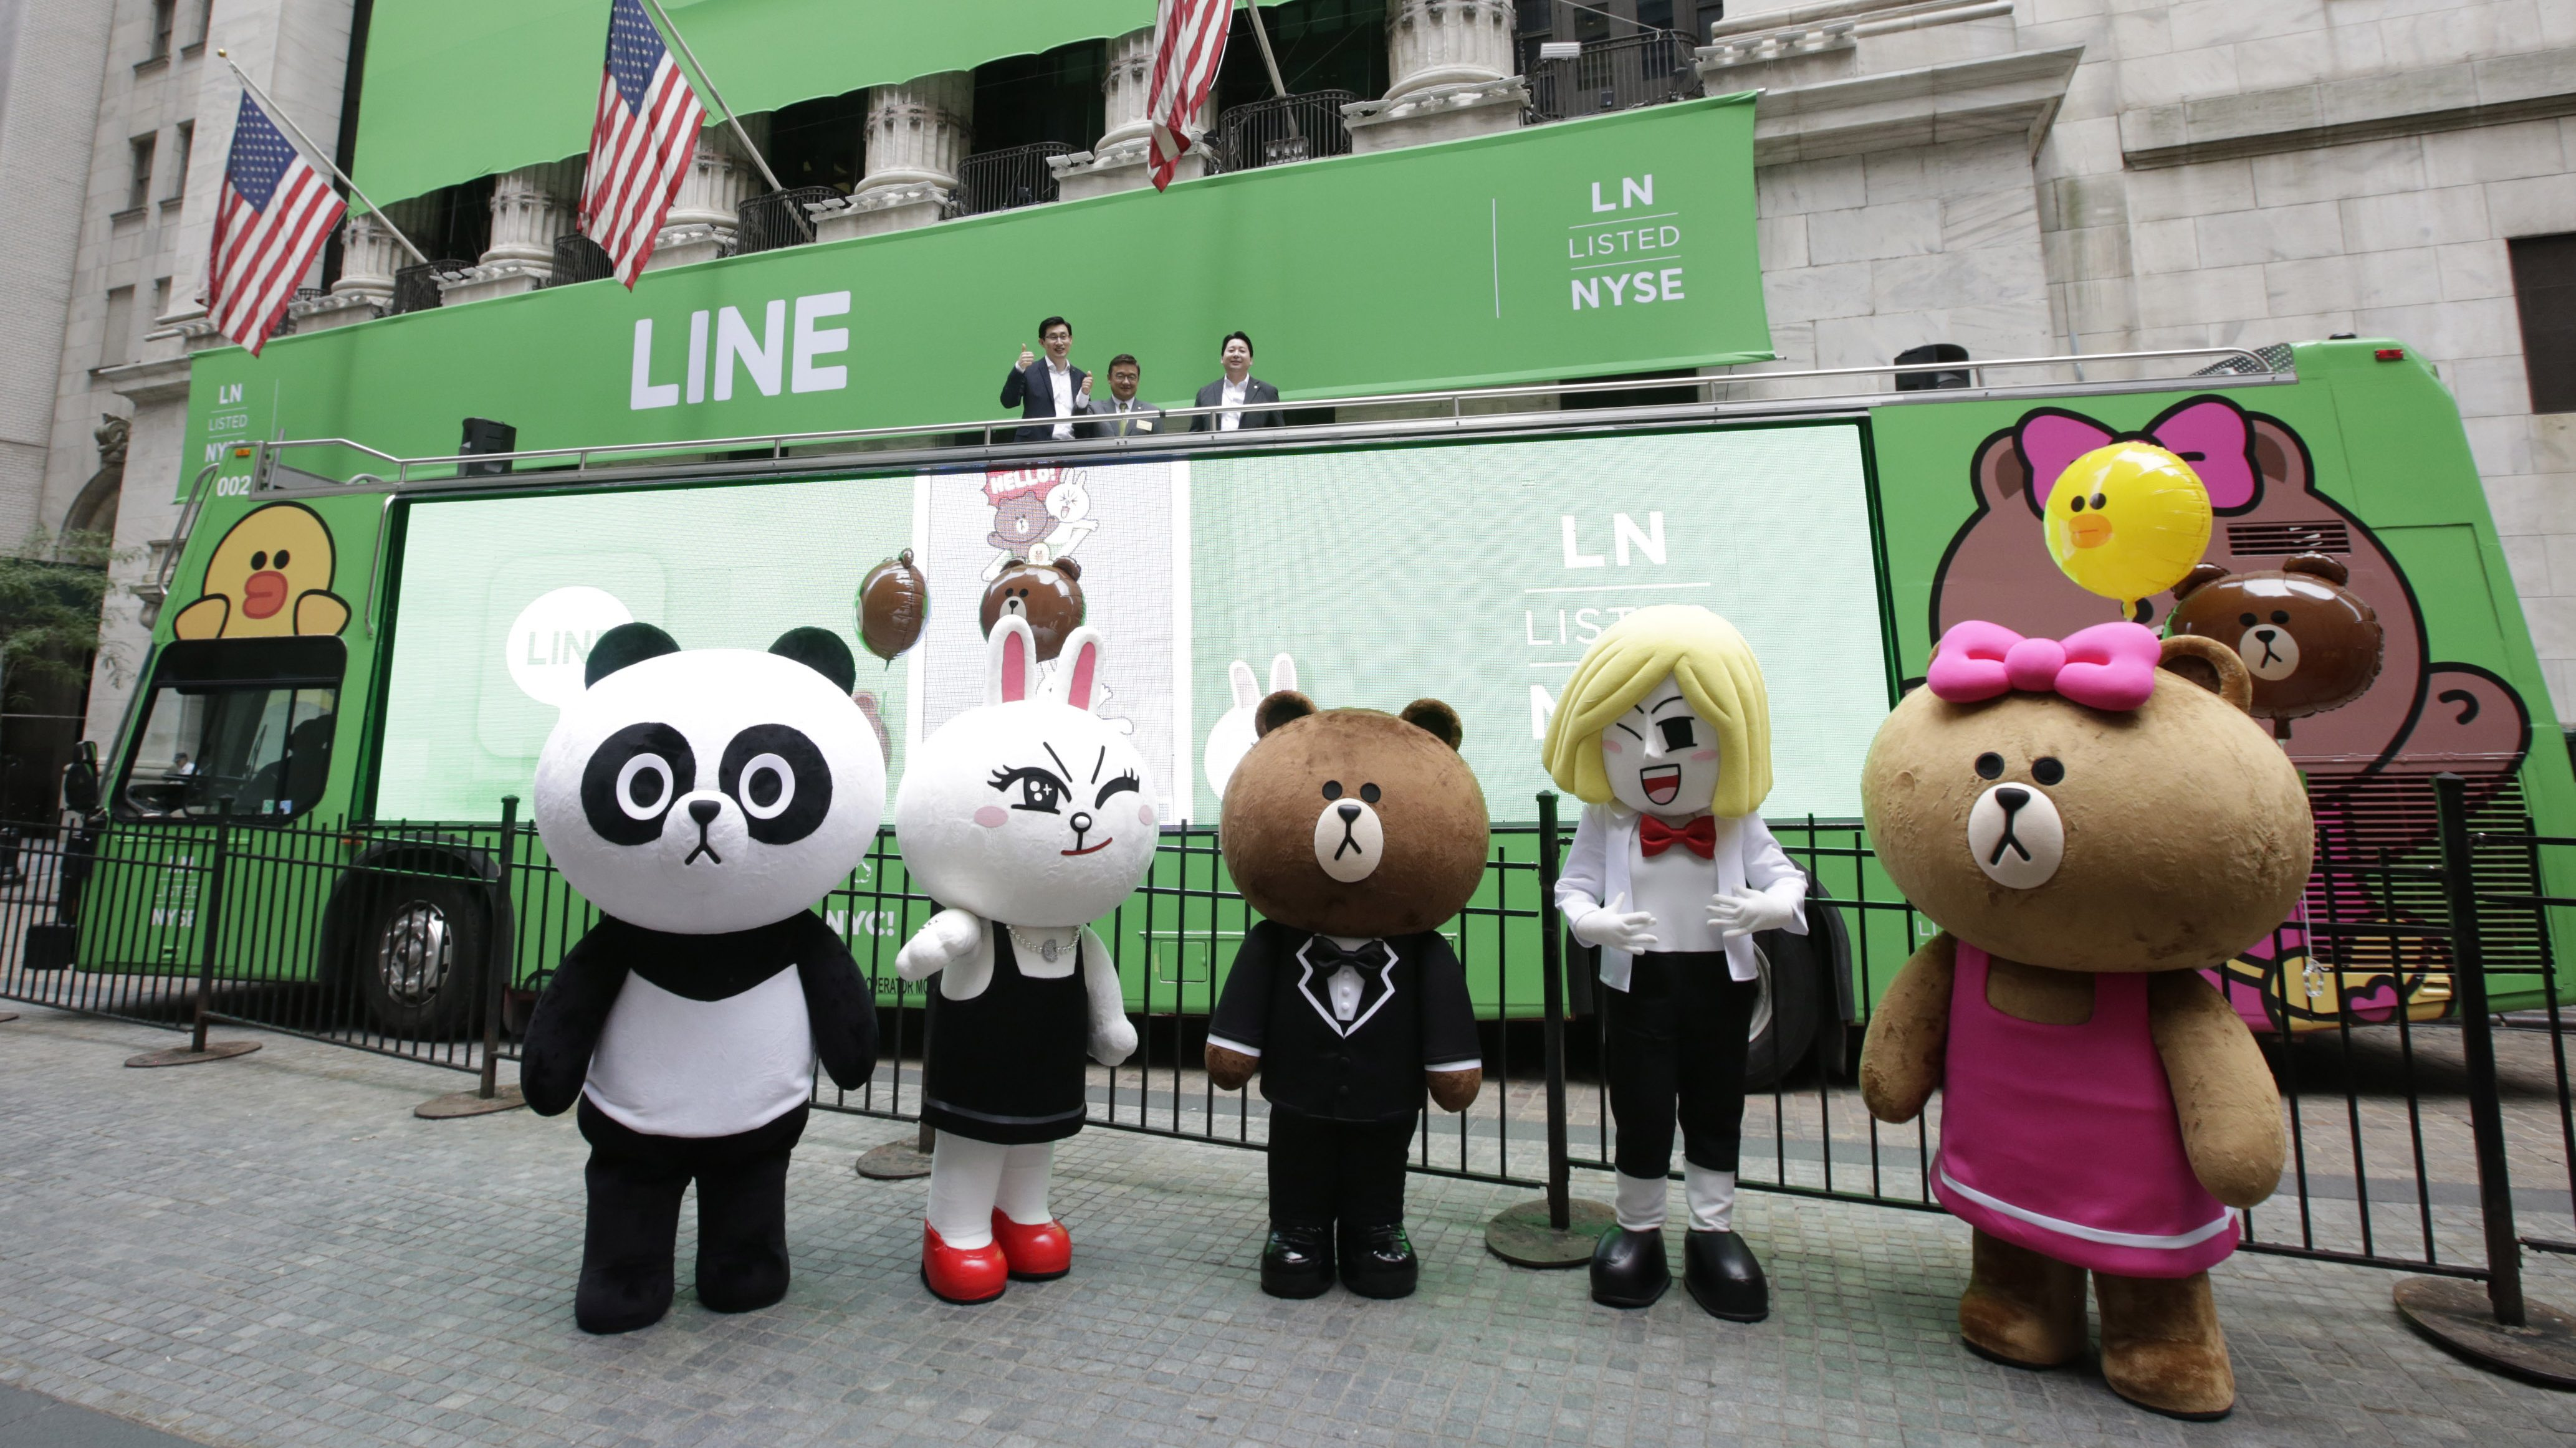 Line characters pose for photos before the company's IPO at the New York Stock Exchange (NYSE) during the first trading of shares in the Japanese messaging-app operator Line Corp offering in New York, New York, USA, 14 July 2016.